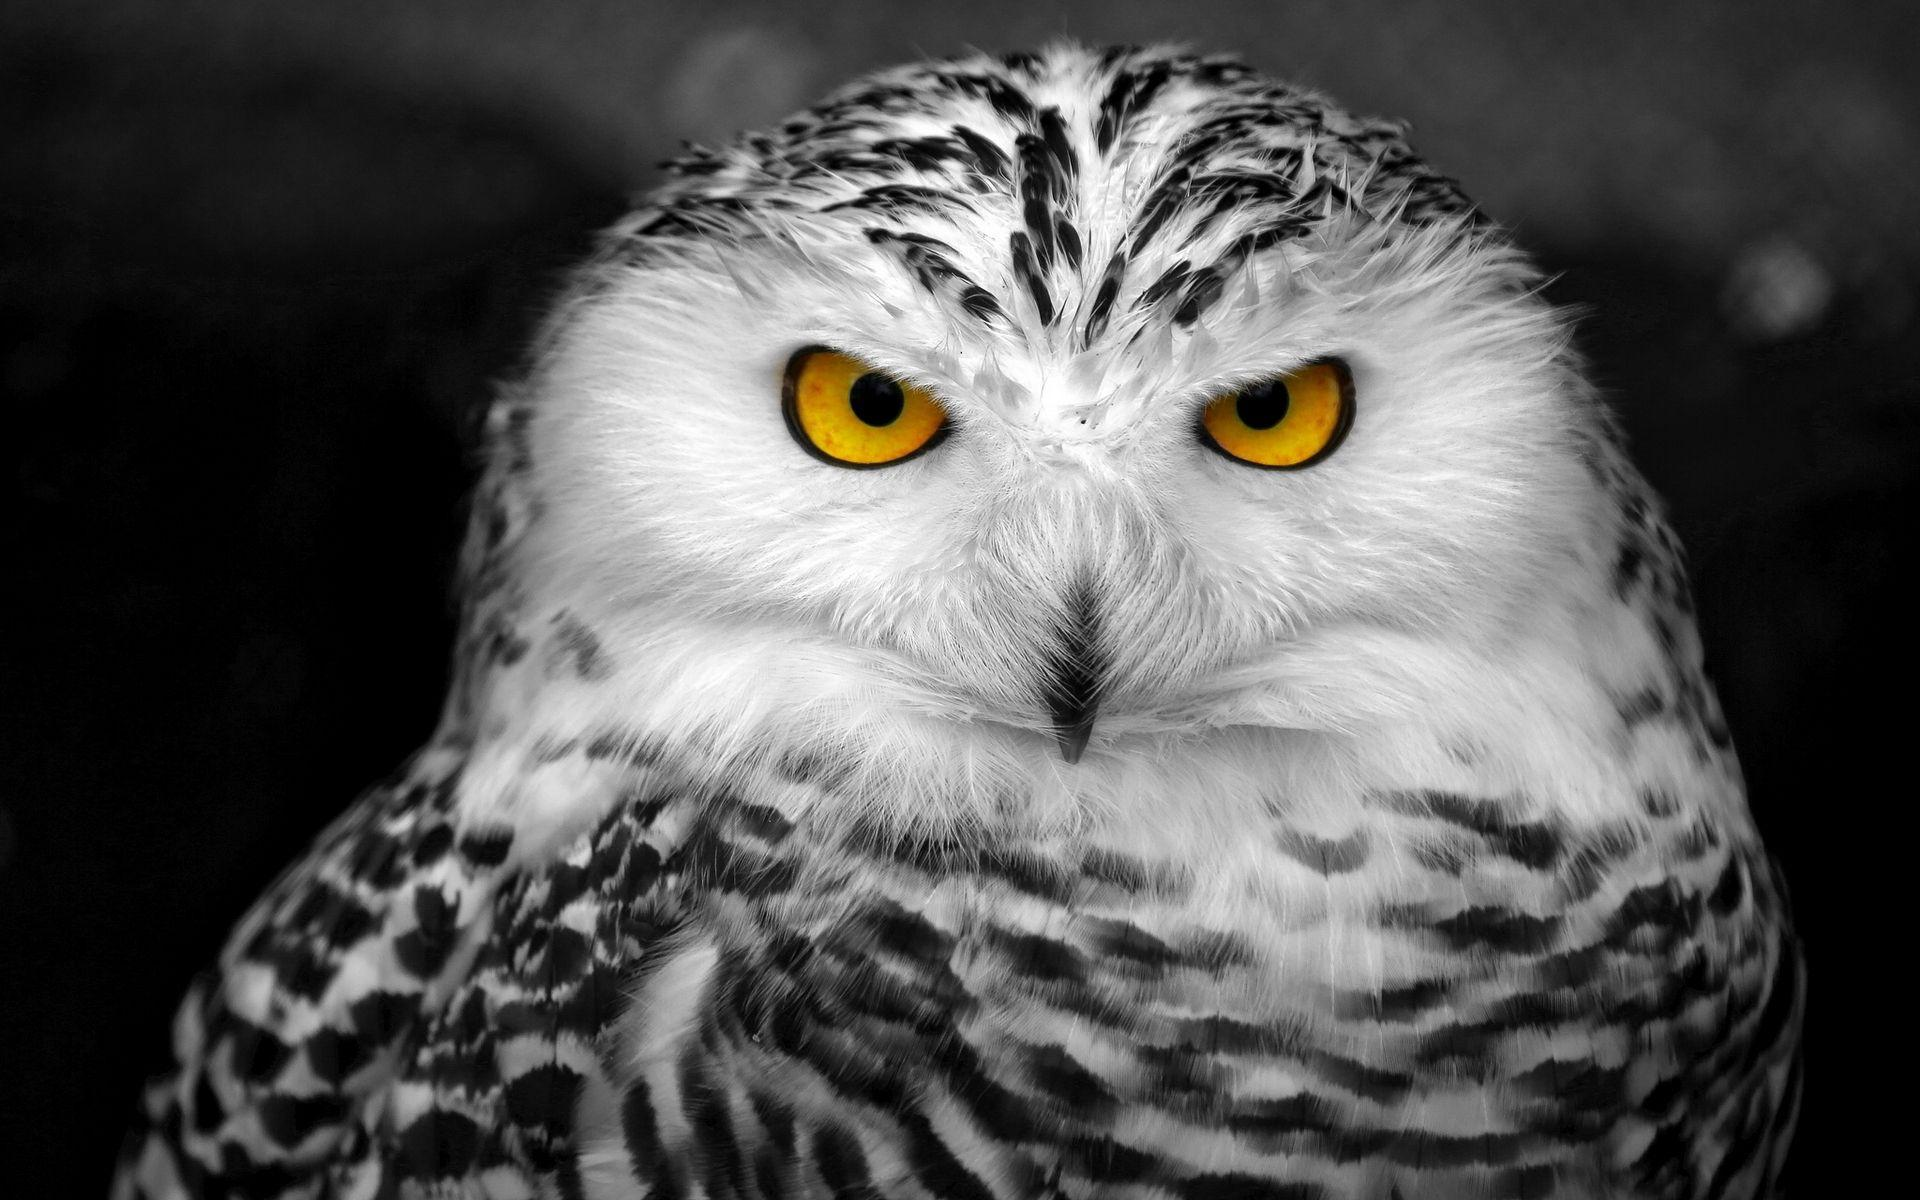 Snowy Owl wallpaper | 1920x1200 | #59095